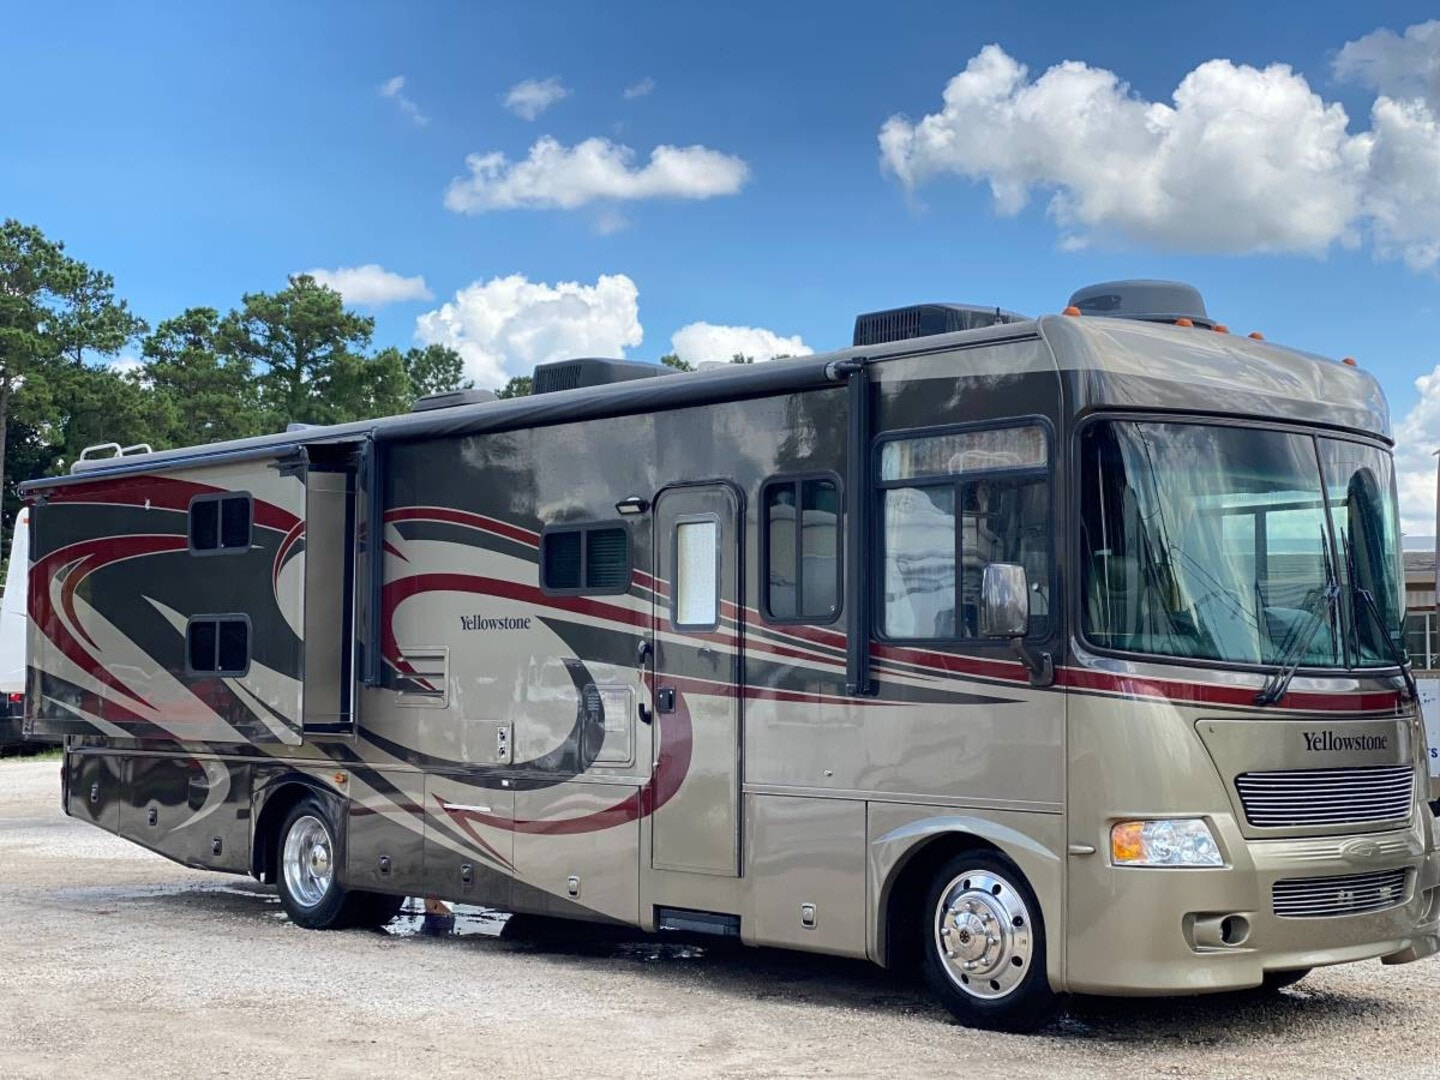 Used, 2009, Yellowstone, Gulfstream Yellowstone Model 8359Y Double Slide Class A Bunk Beds Loaded, RV - Class A